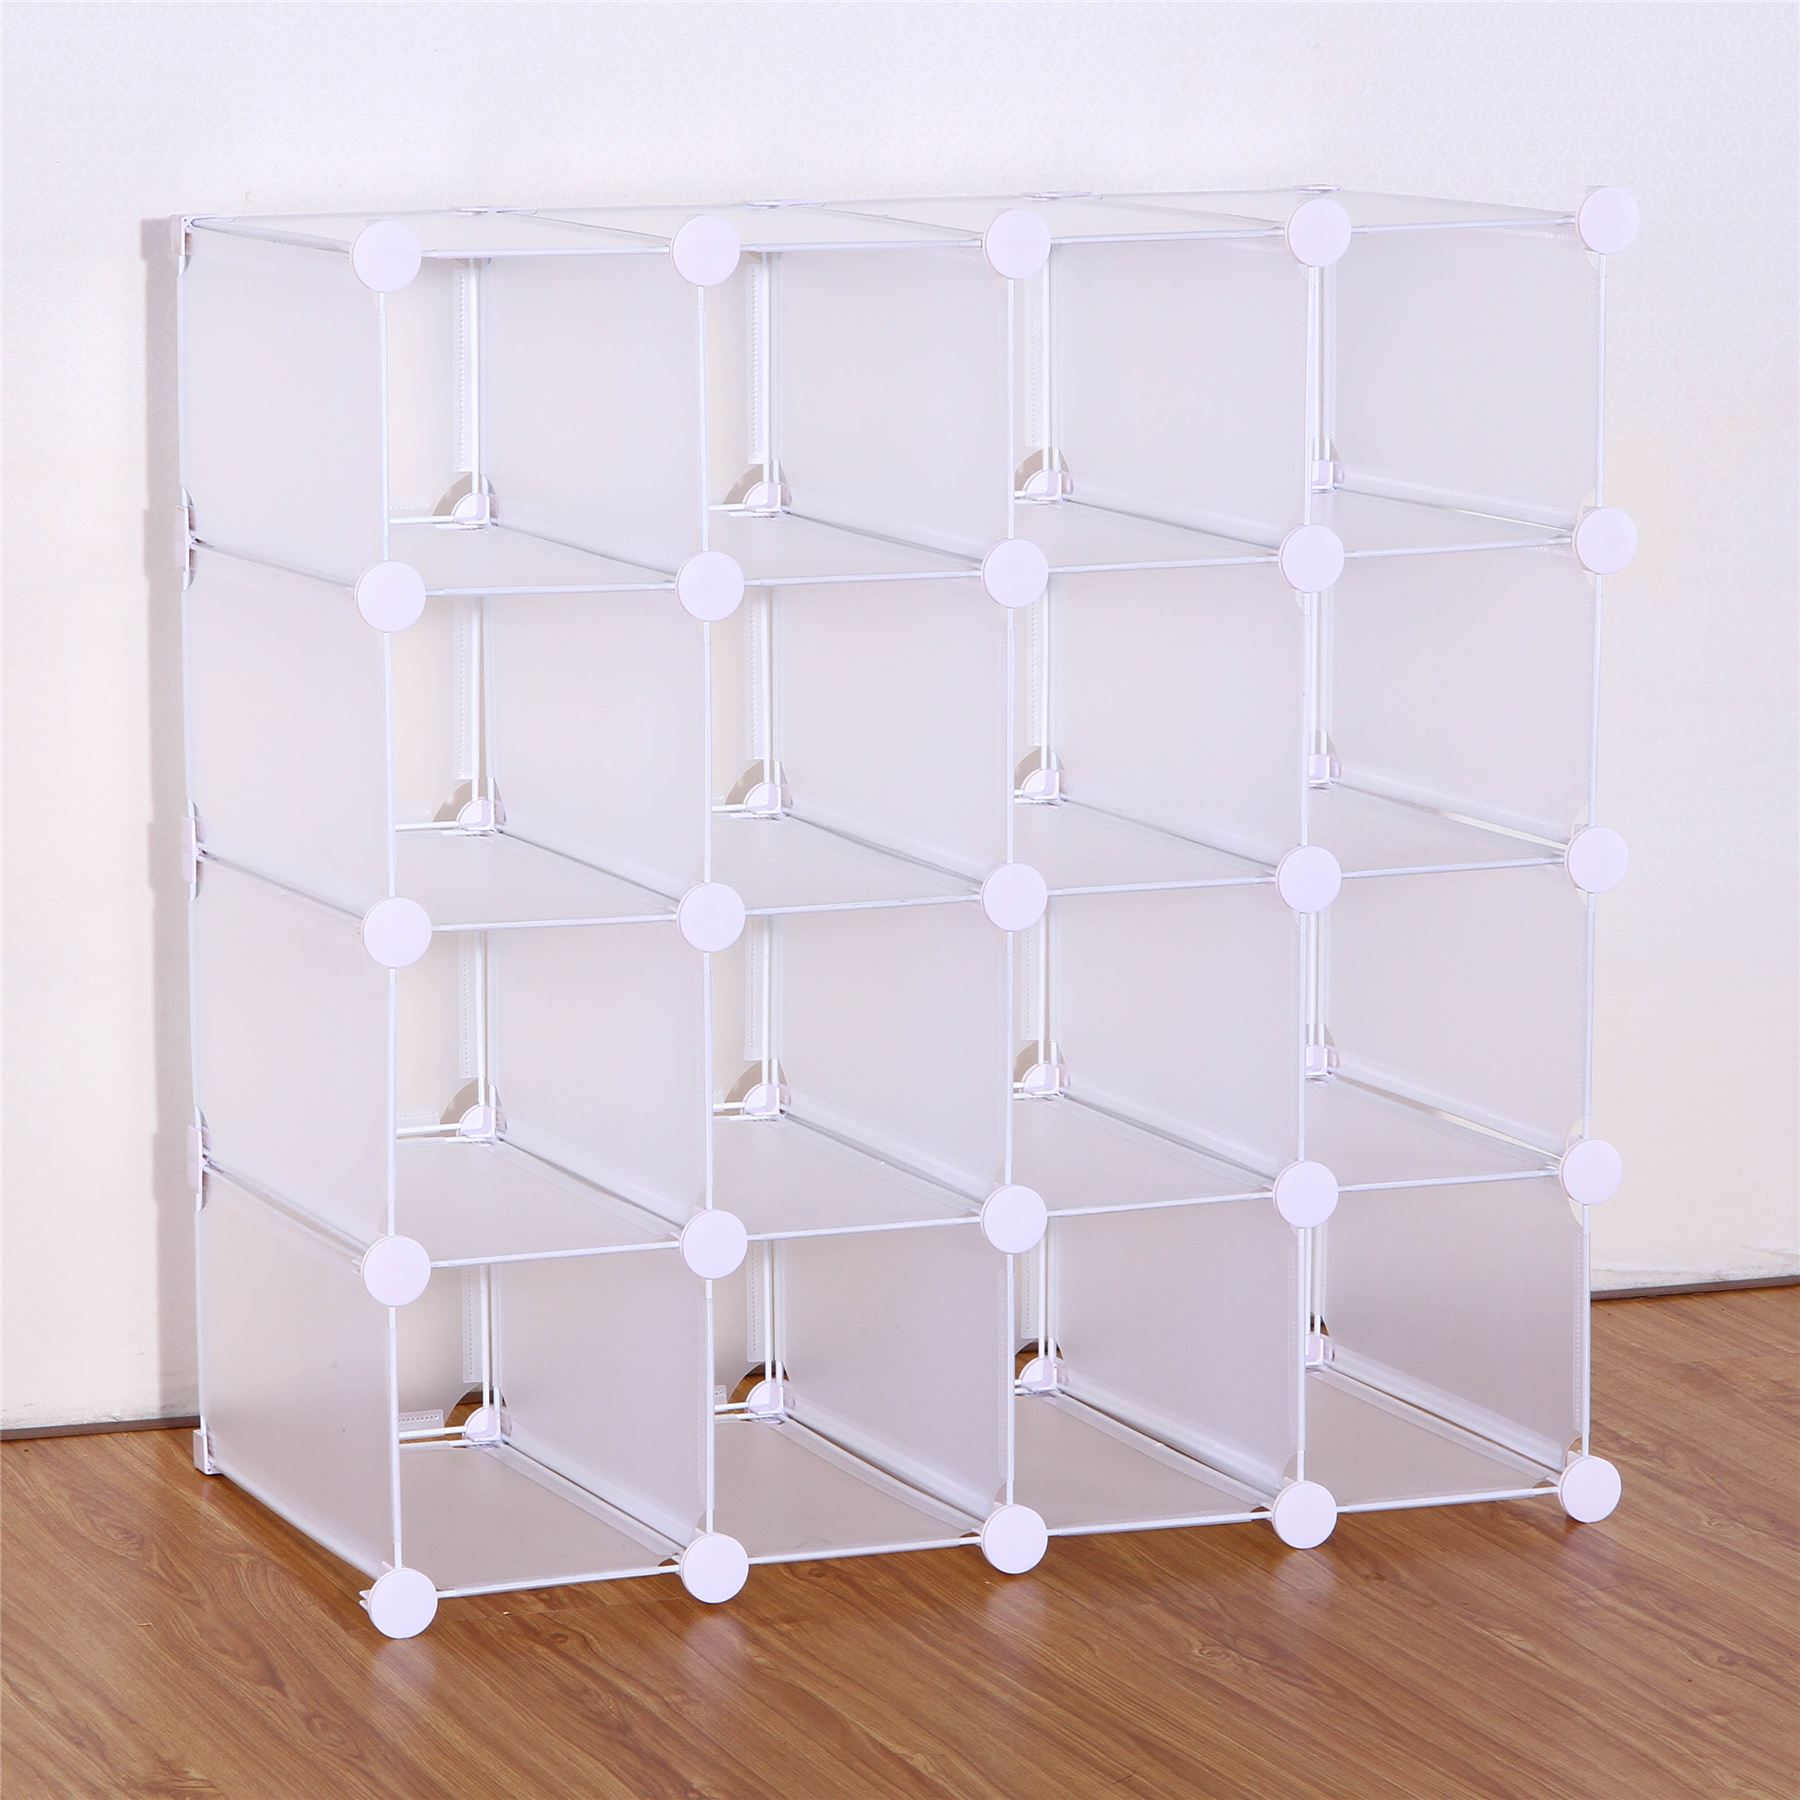 Exhibition Stand Organizer : Vinsani interlocking pairs cube shoe organizer rack